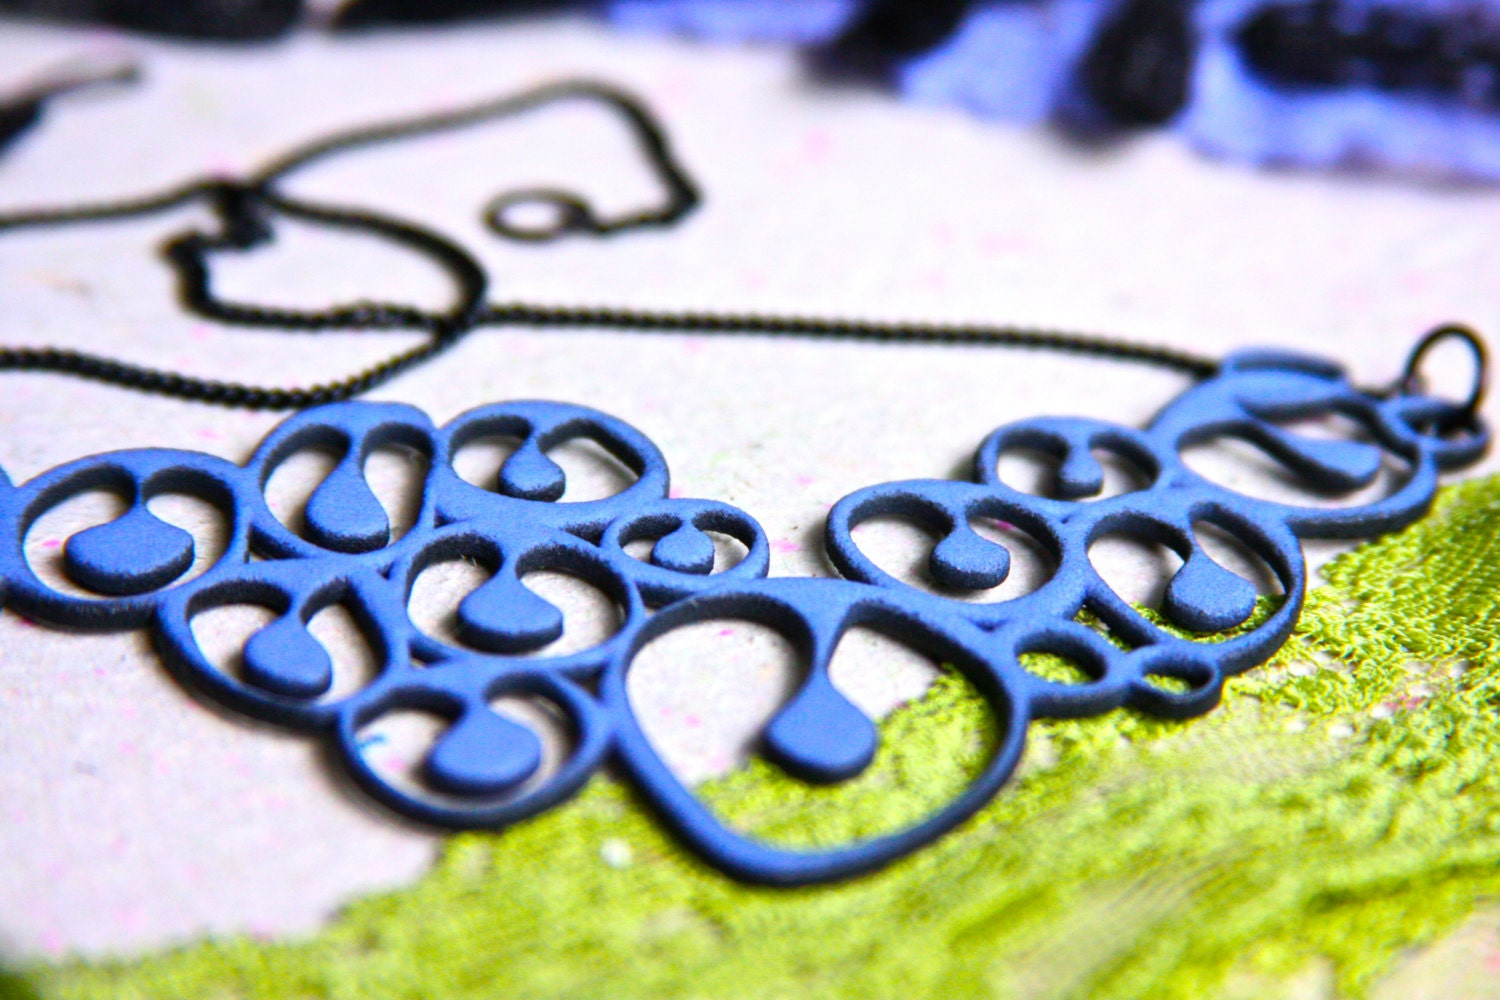 Blue Mod Necklace - Funky Shapes - 3d Printed Jewelry - LemantulaDesigns